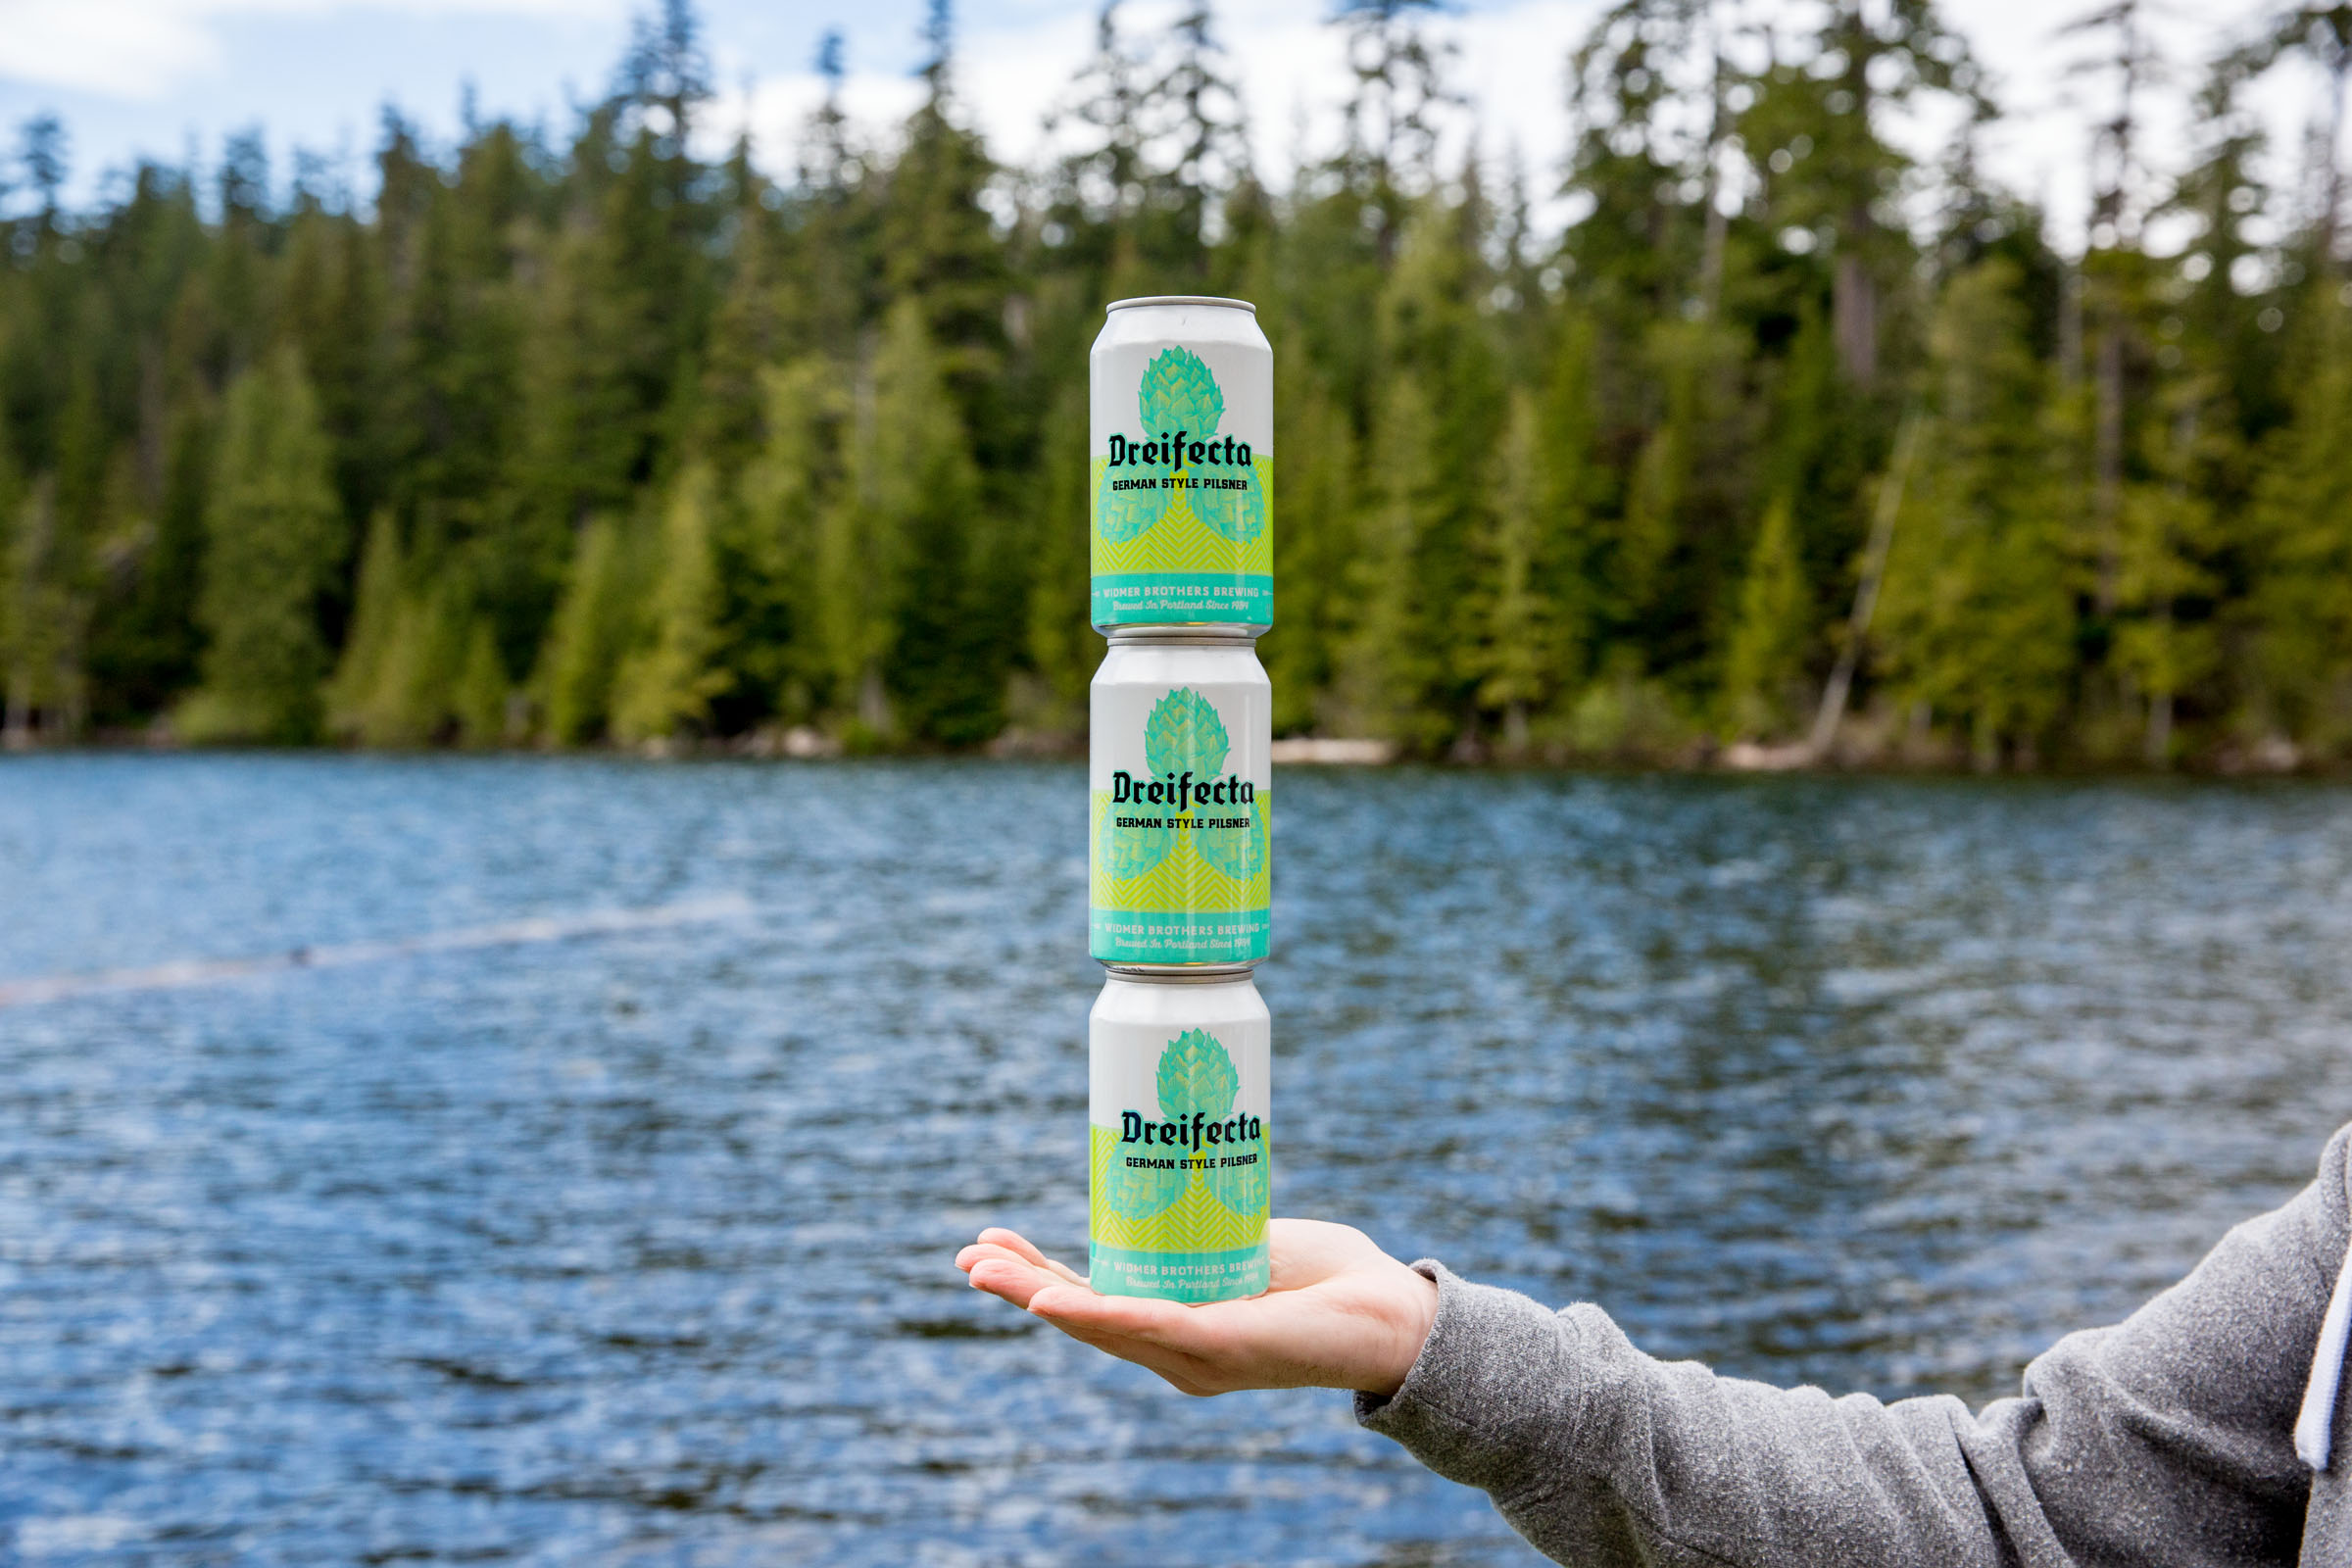 Widmer-Brothers-Brewing-has-a-new-summer-seasonal-with-its-Dreifecta-a-German-Style-Pilsner-made-with-a-special-blend-of-three-hops-and-three-malts.-image-courtesy-of-Widmer-Brothers-Brewing